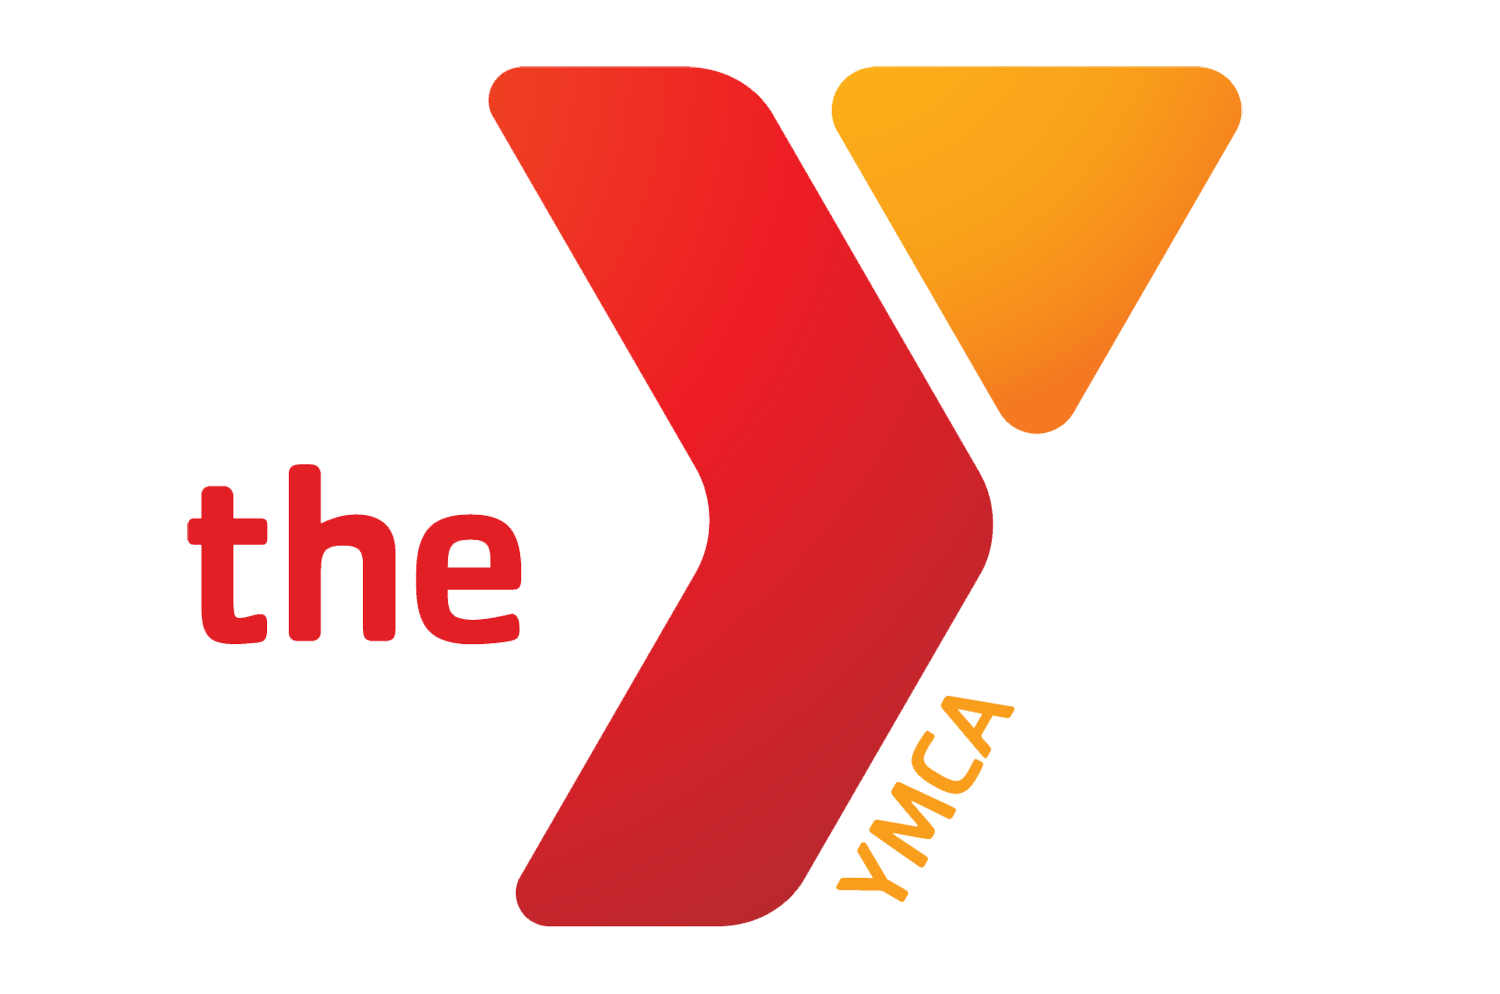 Ymca logo png. Symbol meaning history and